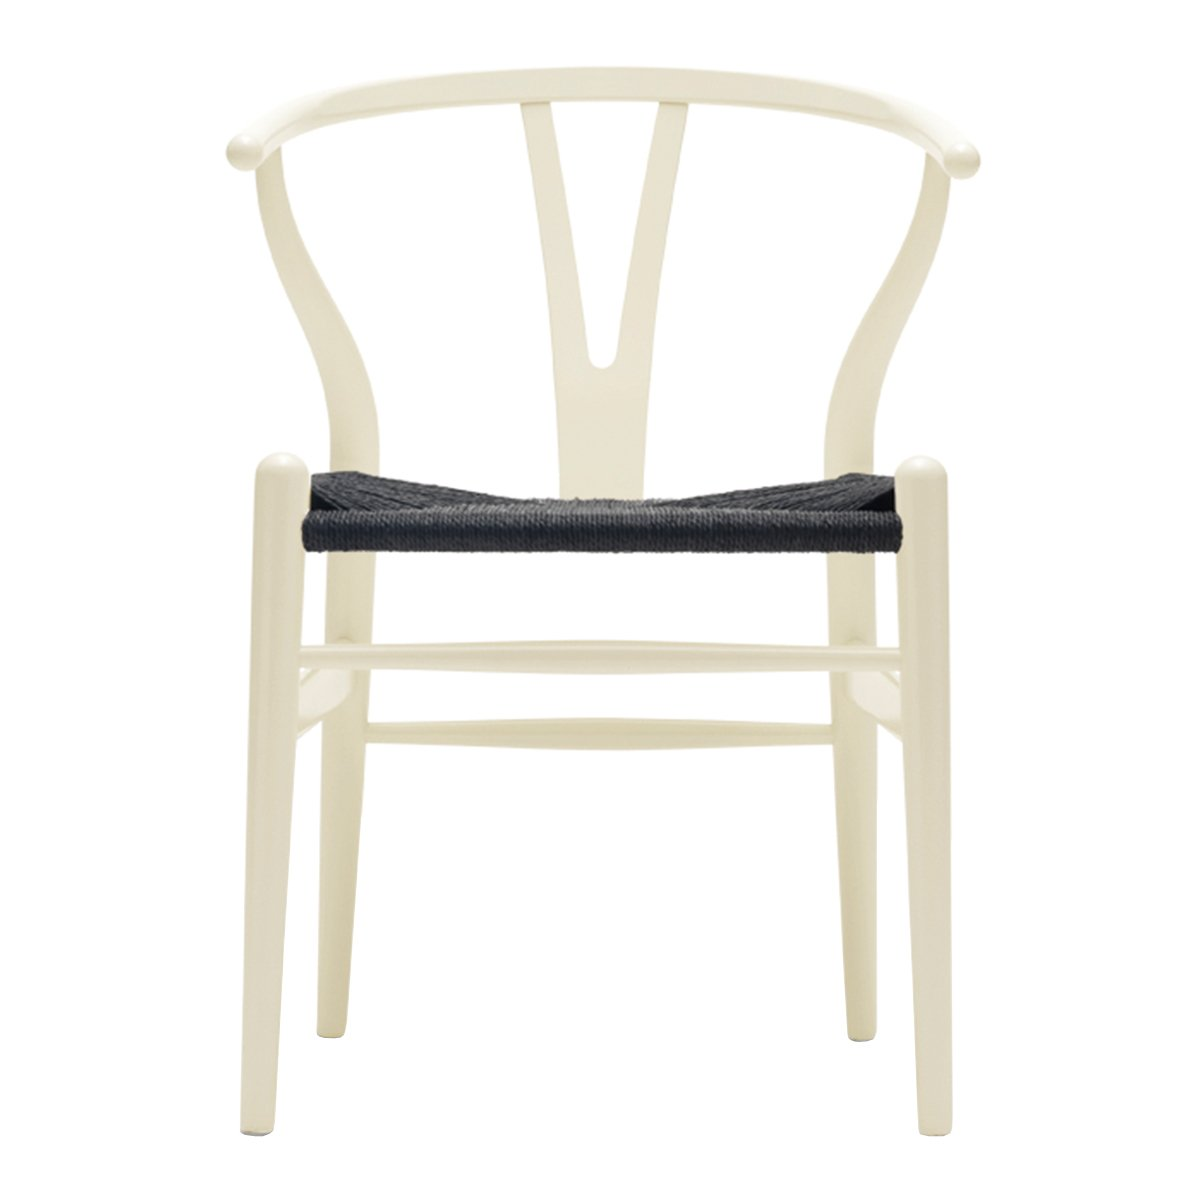 Carl Hansen Wishbone Chair NCS S1005-Y - Zwart